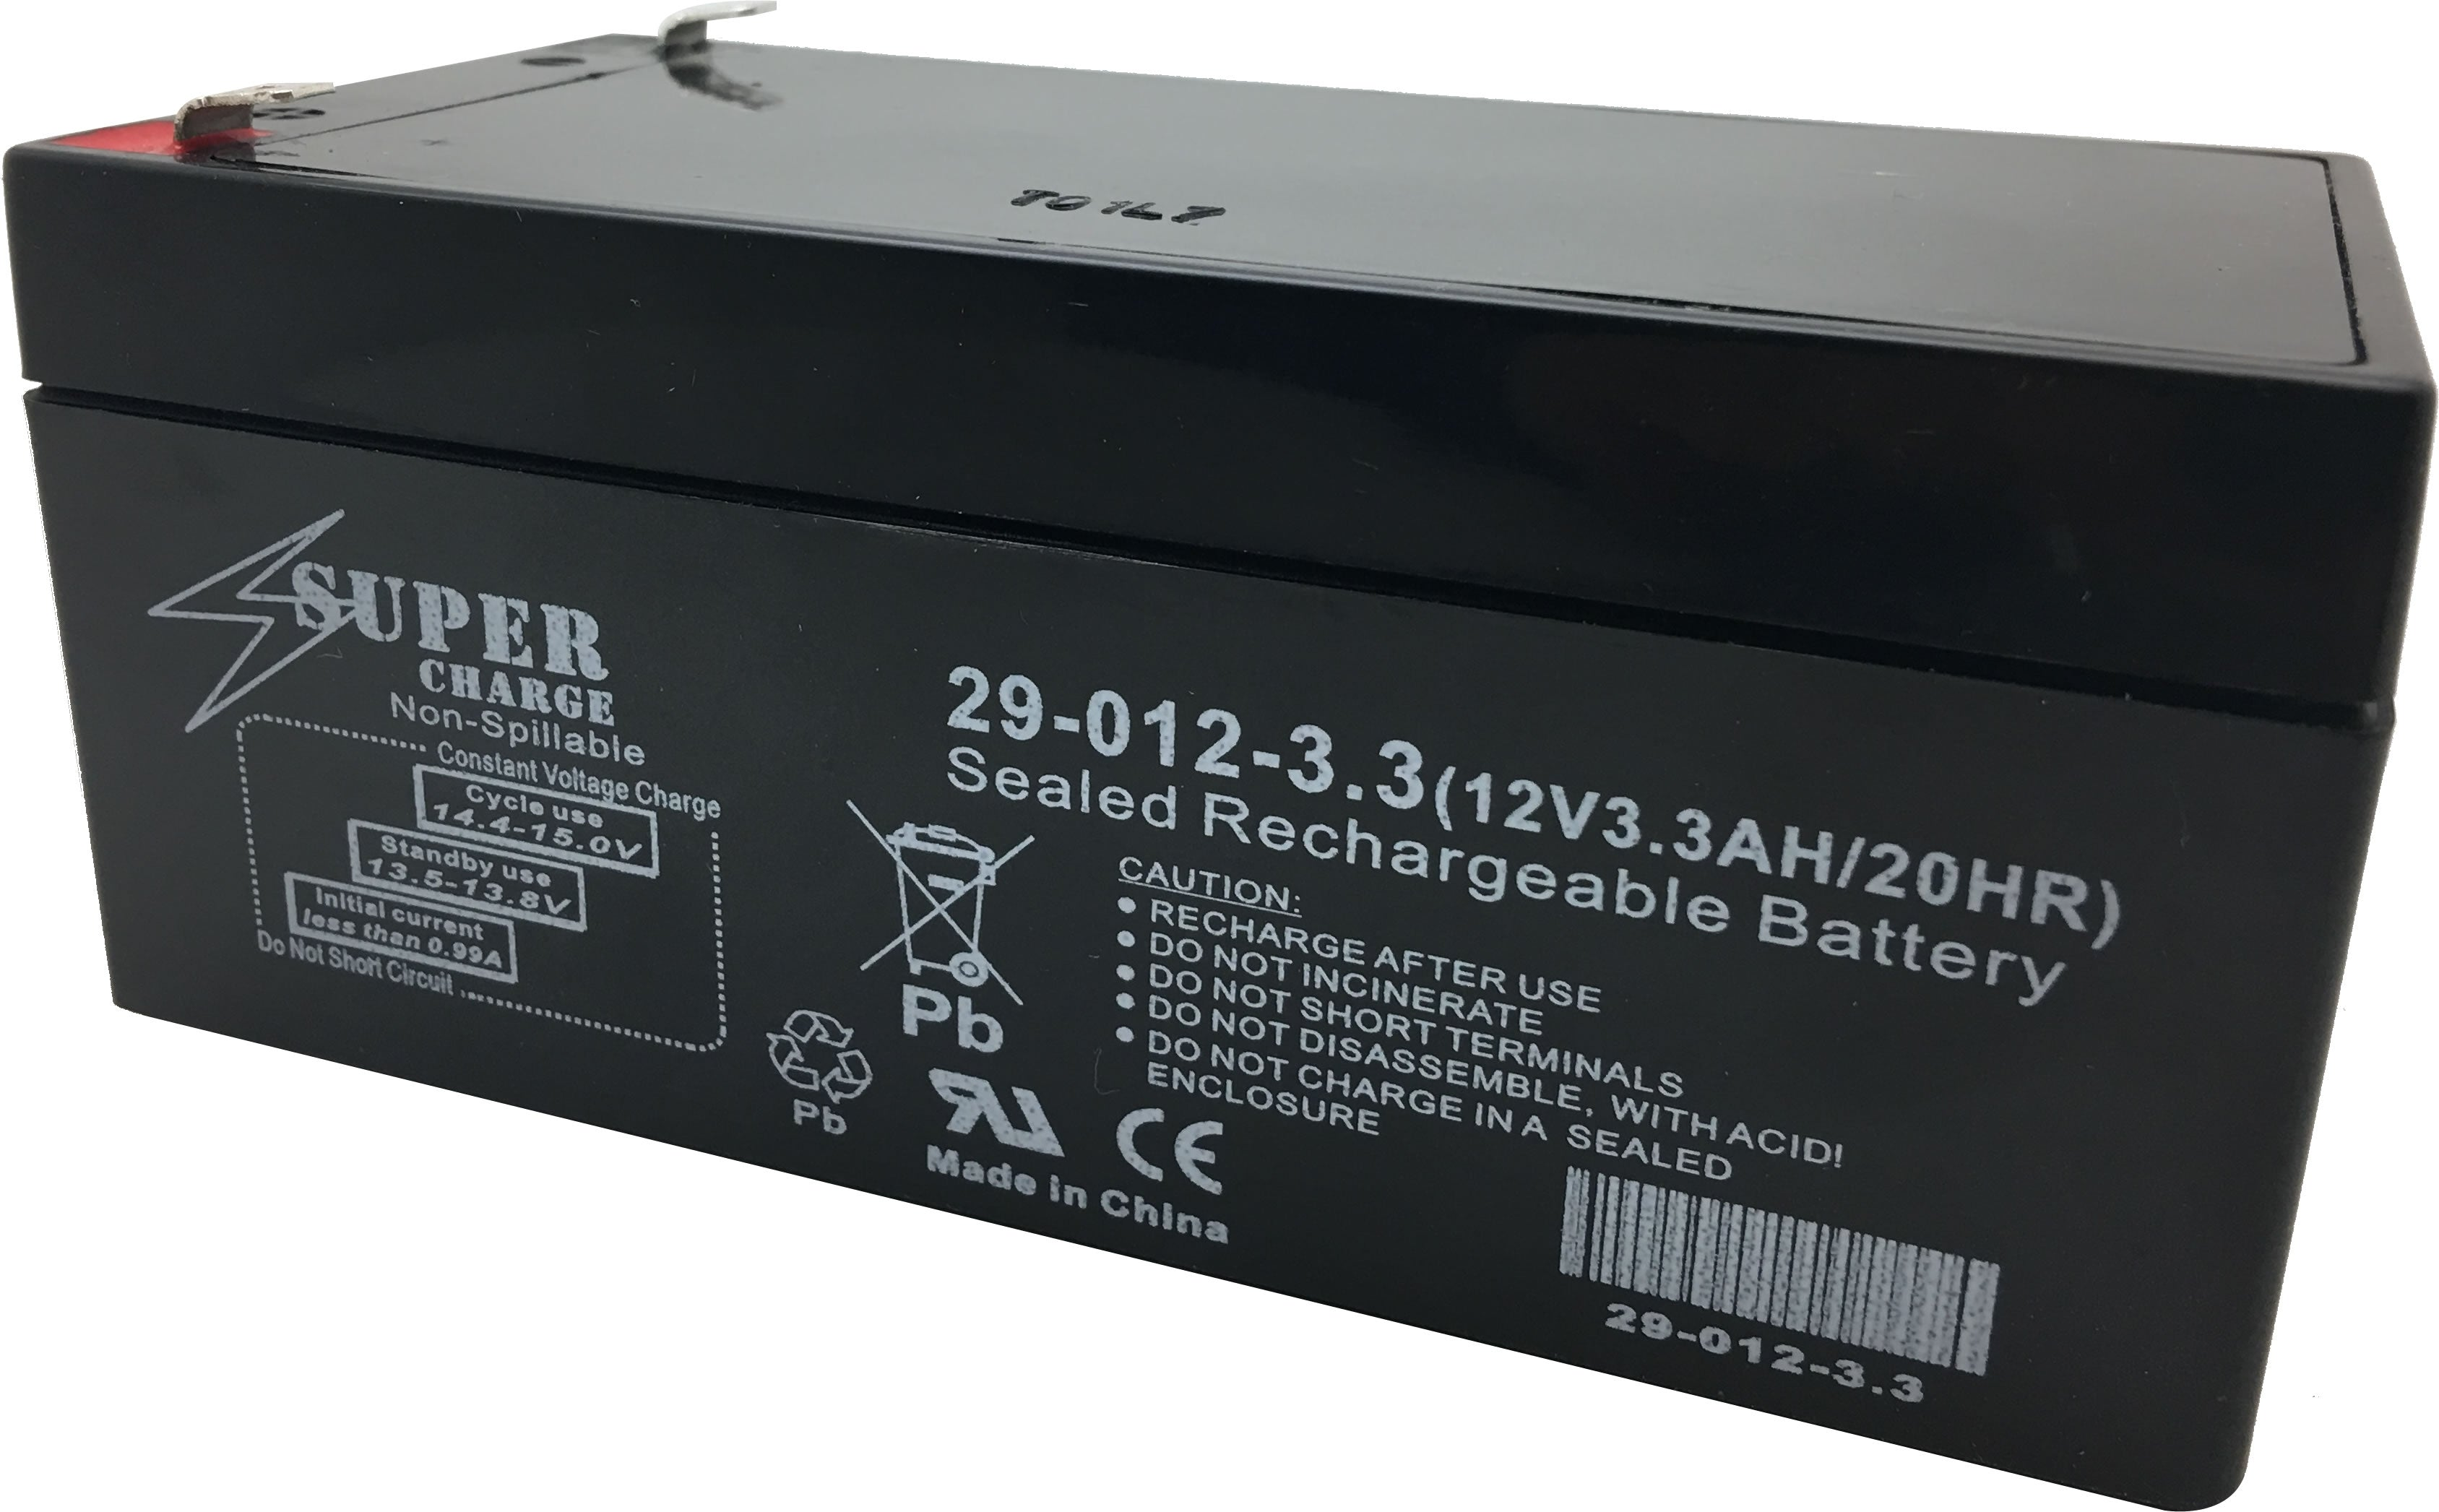 29-012-3.3 Rechargeable Battery 12V 3.3AH 20HR